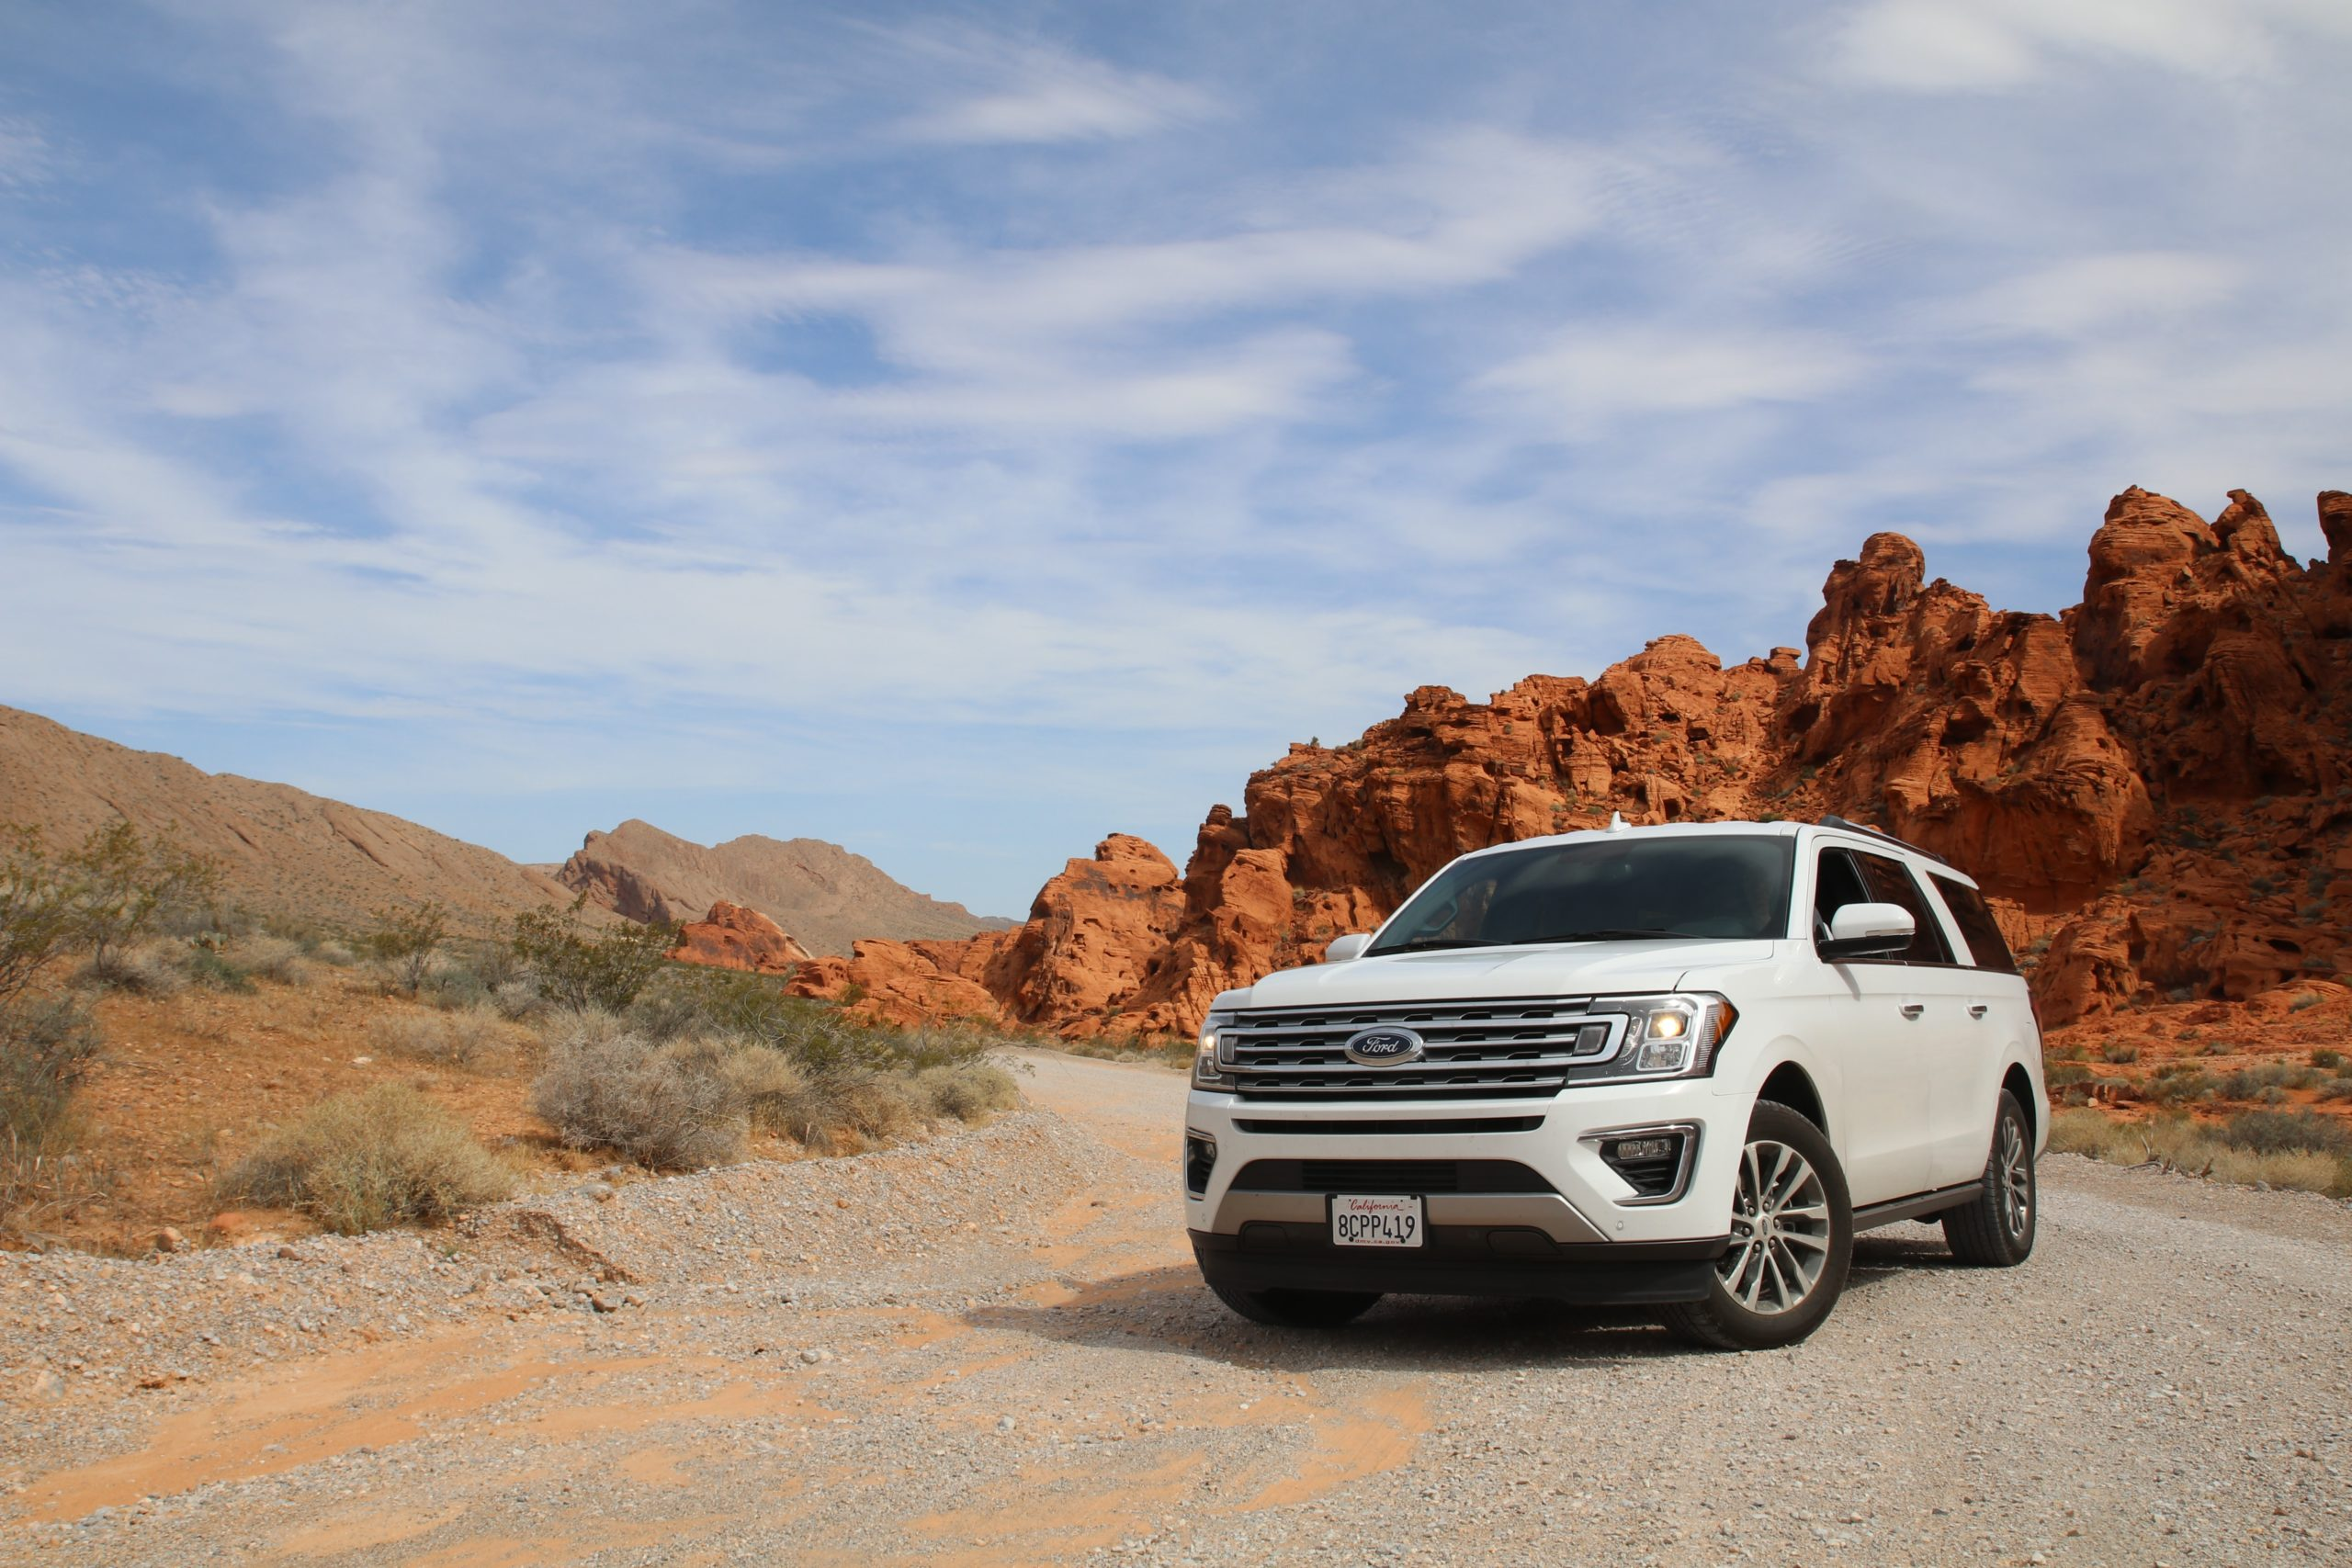 Best 4x4 SUV You Should Buy: Best For Vehicle Protection